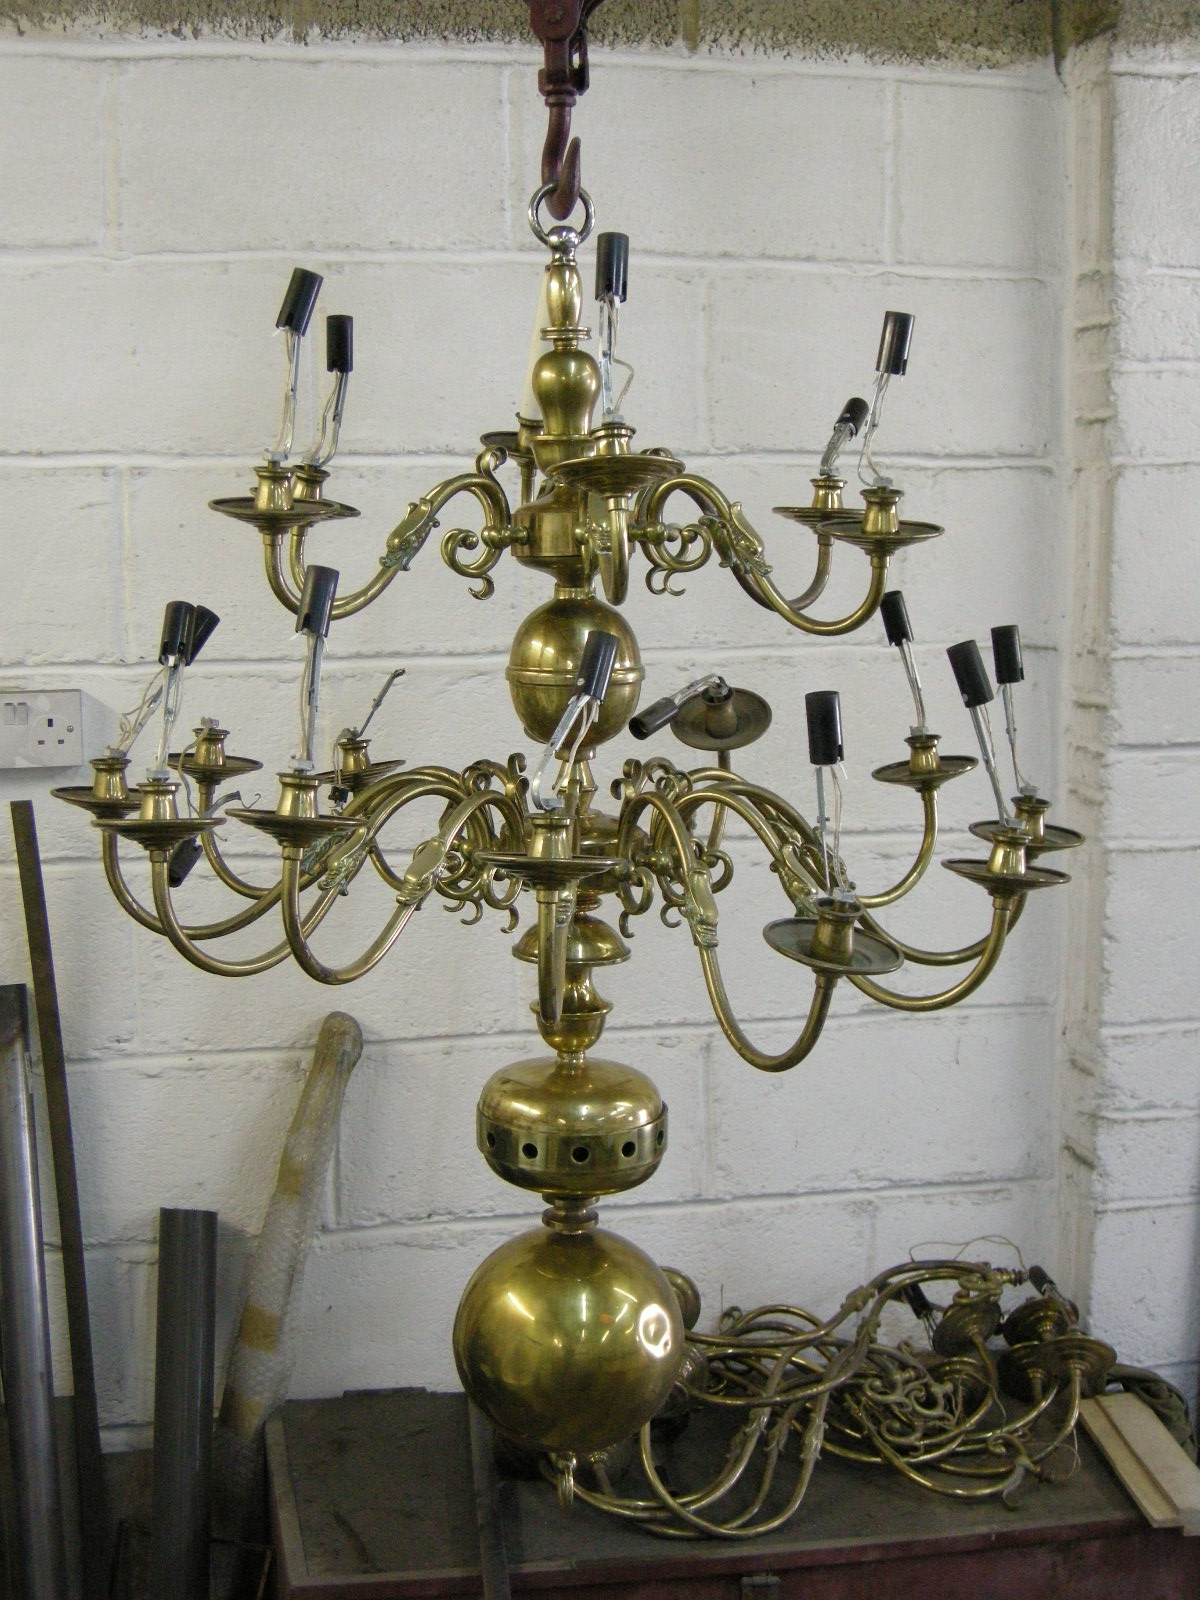 30 arm chandelier before restoration